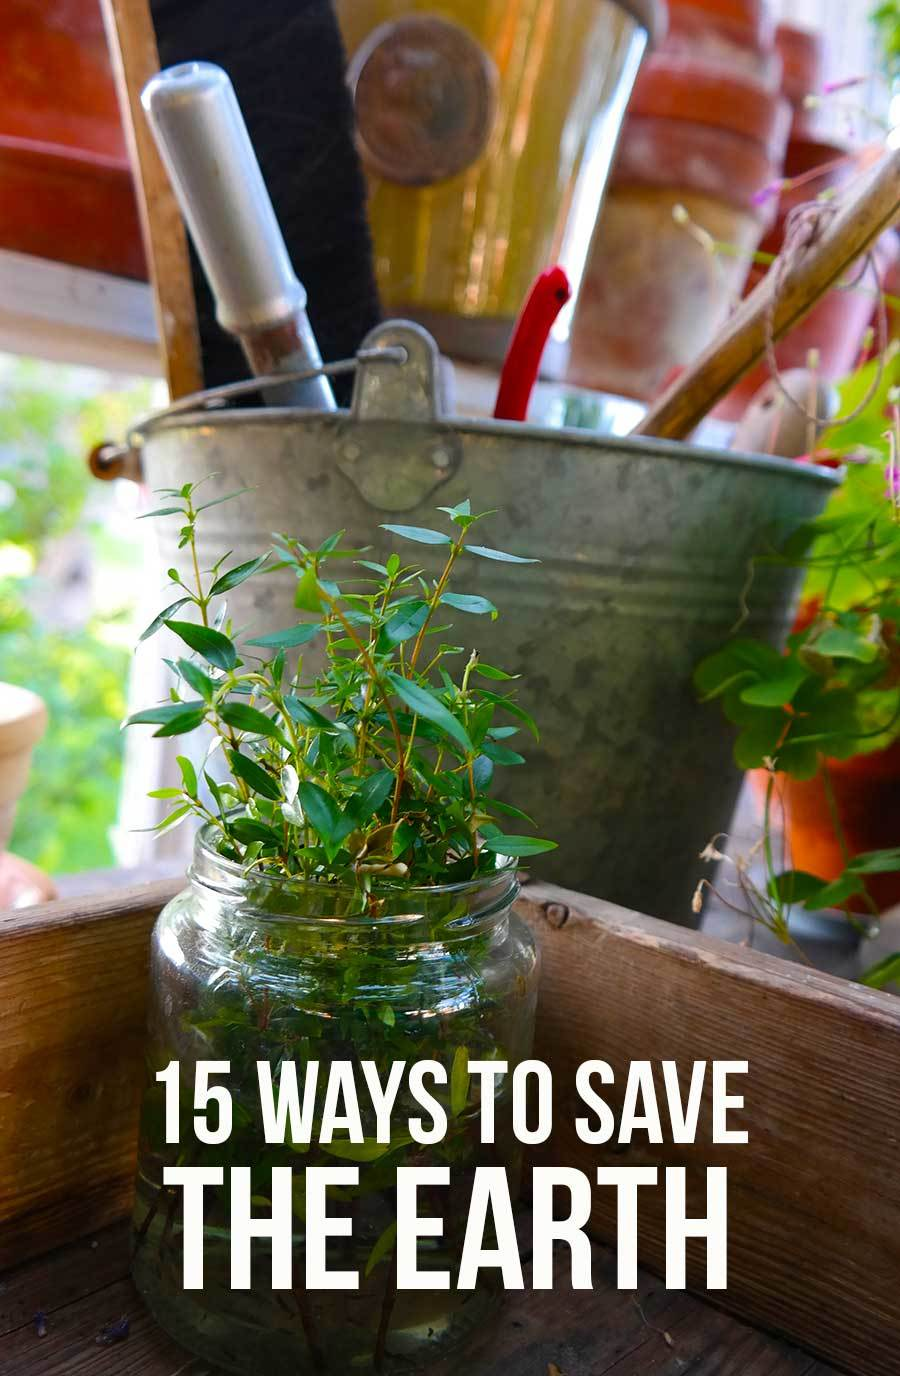 15 easy ways to save the earth